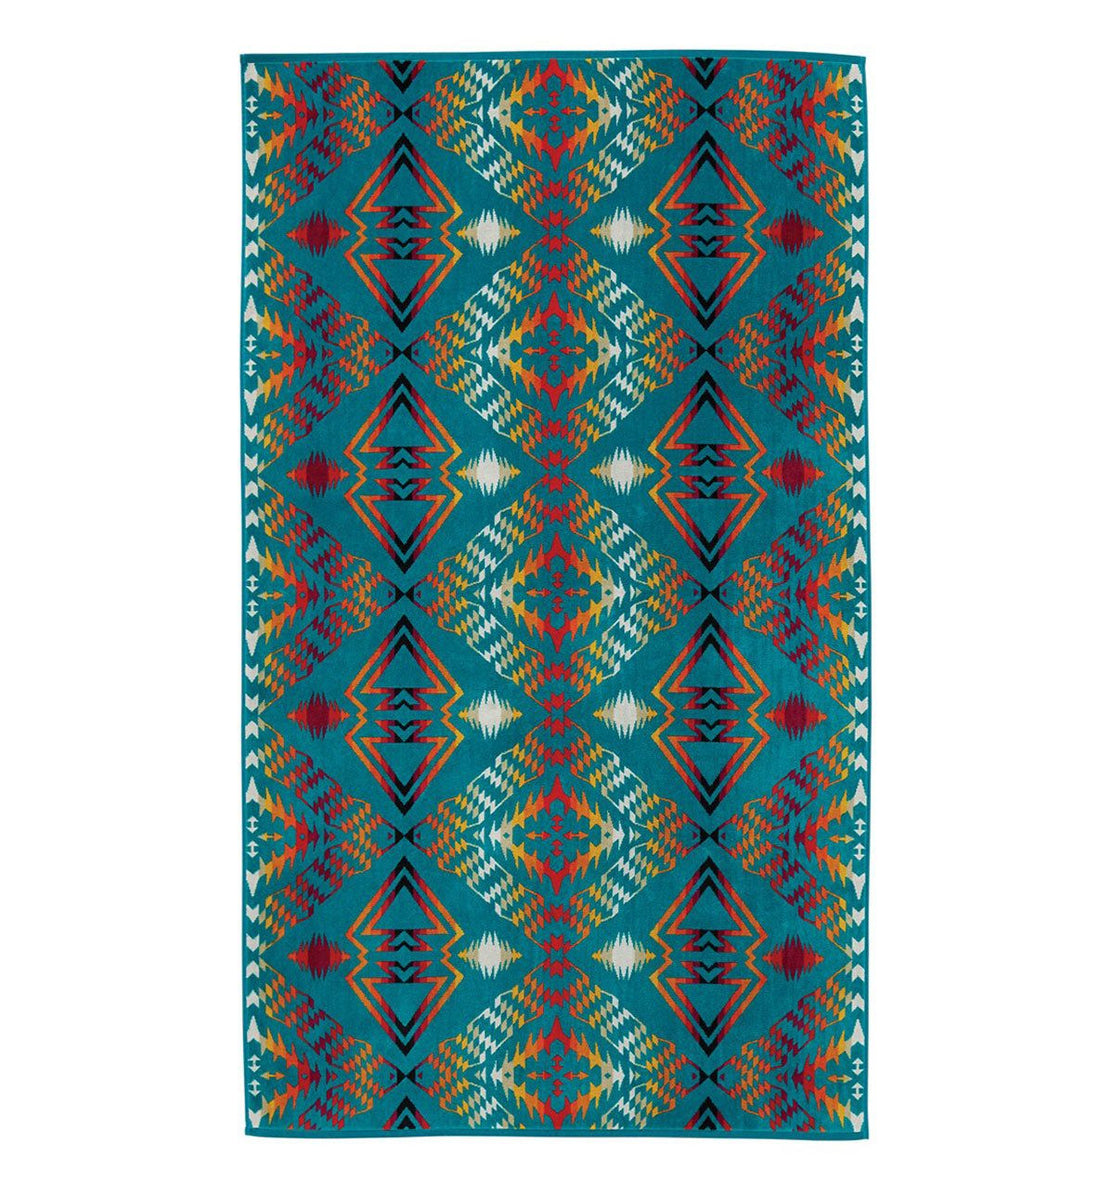 Pendleton Towel- Thunder & Earthquake - Houseware - Iron and Resin